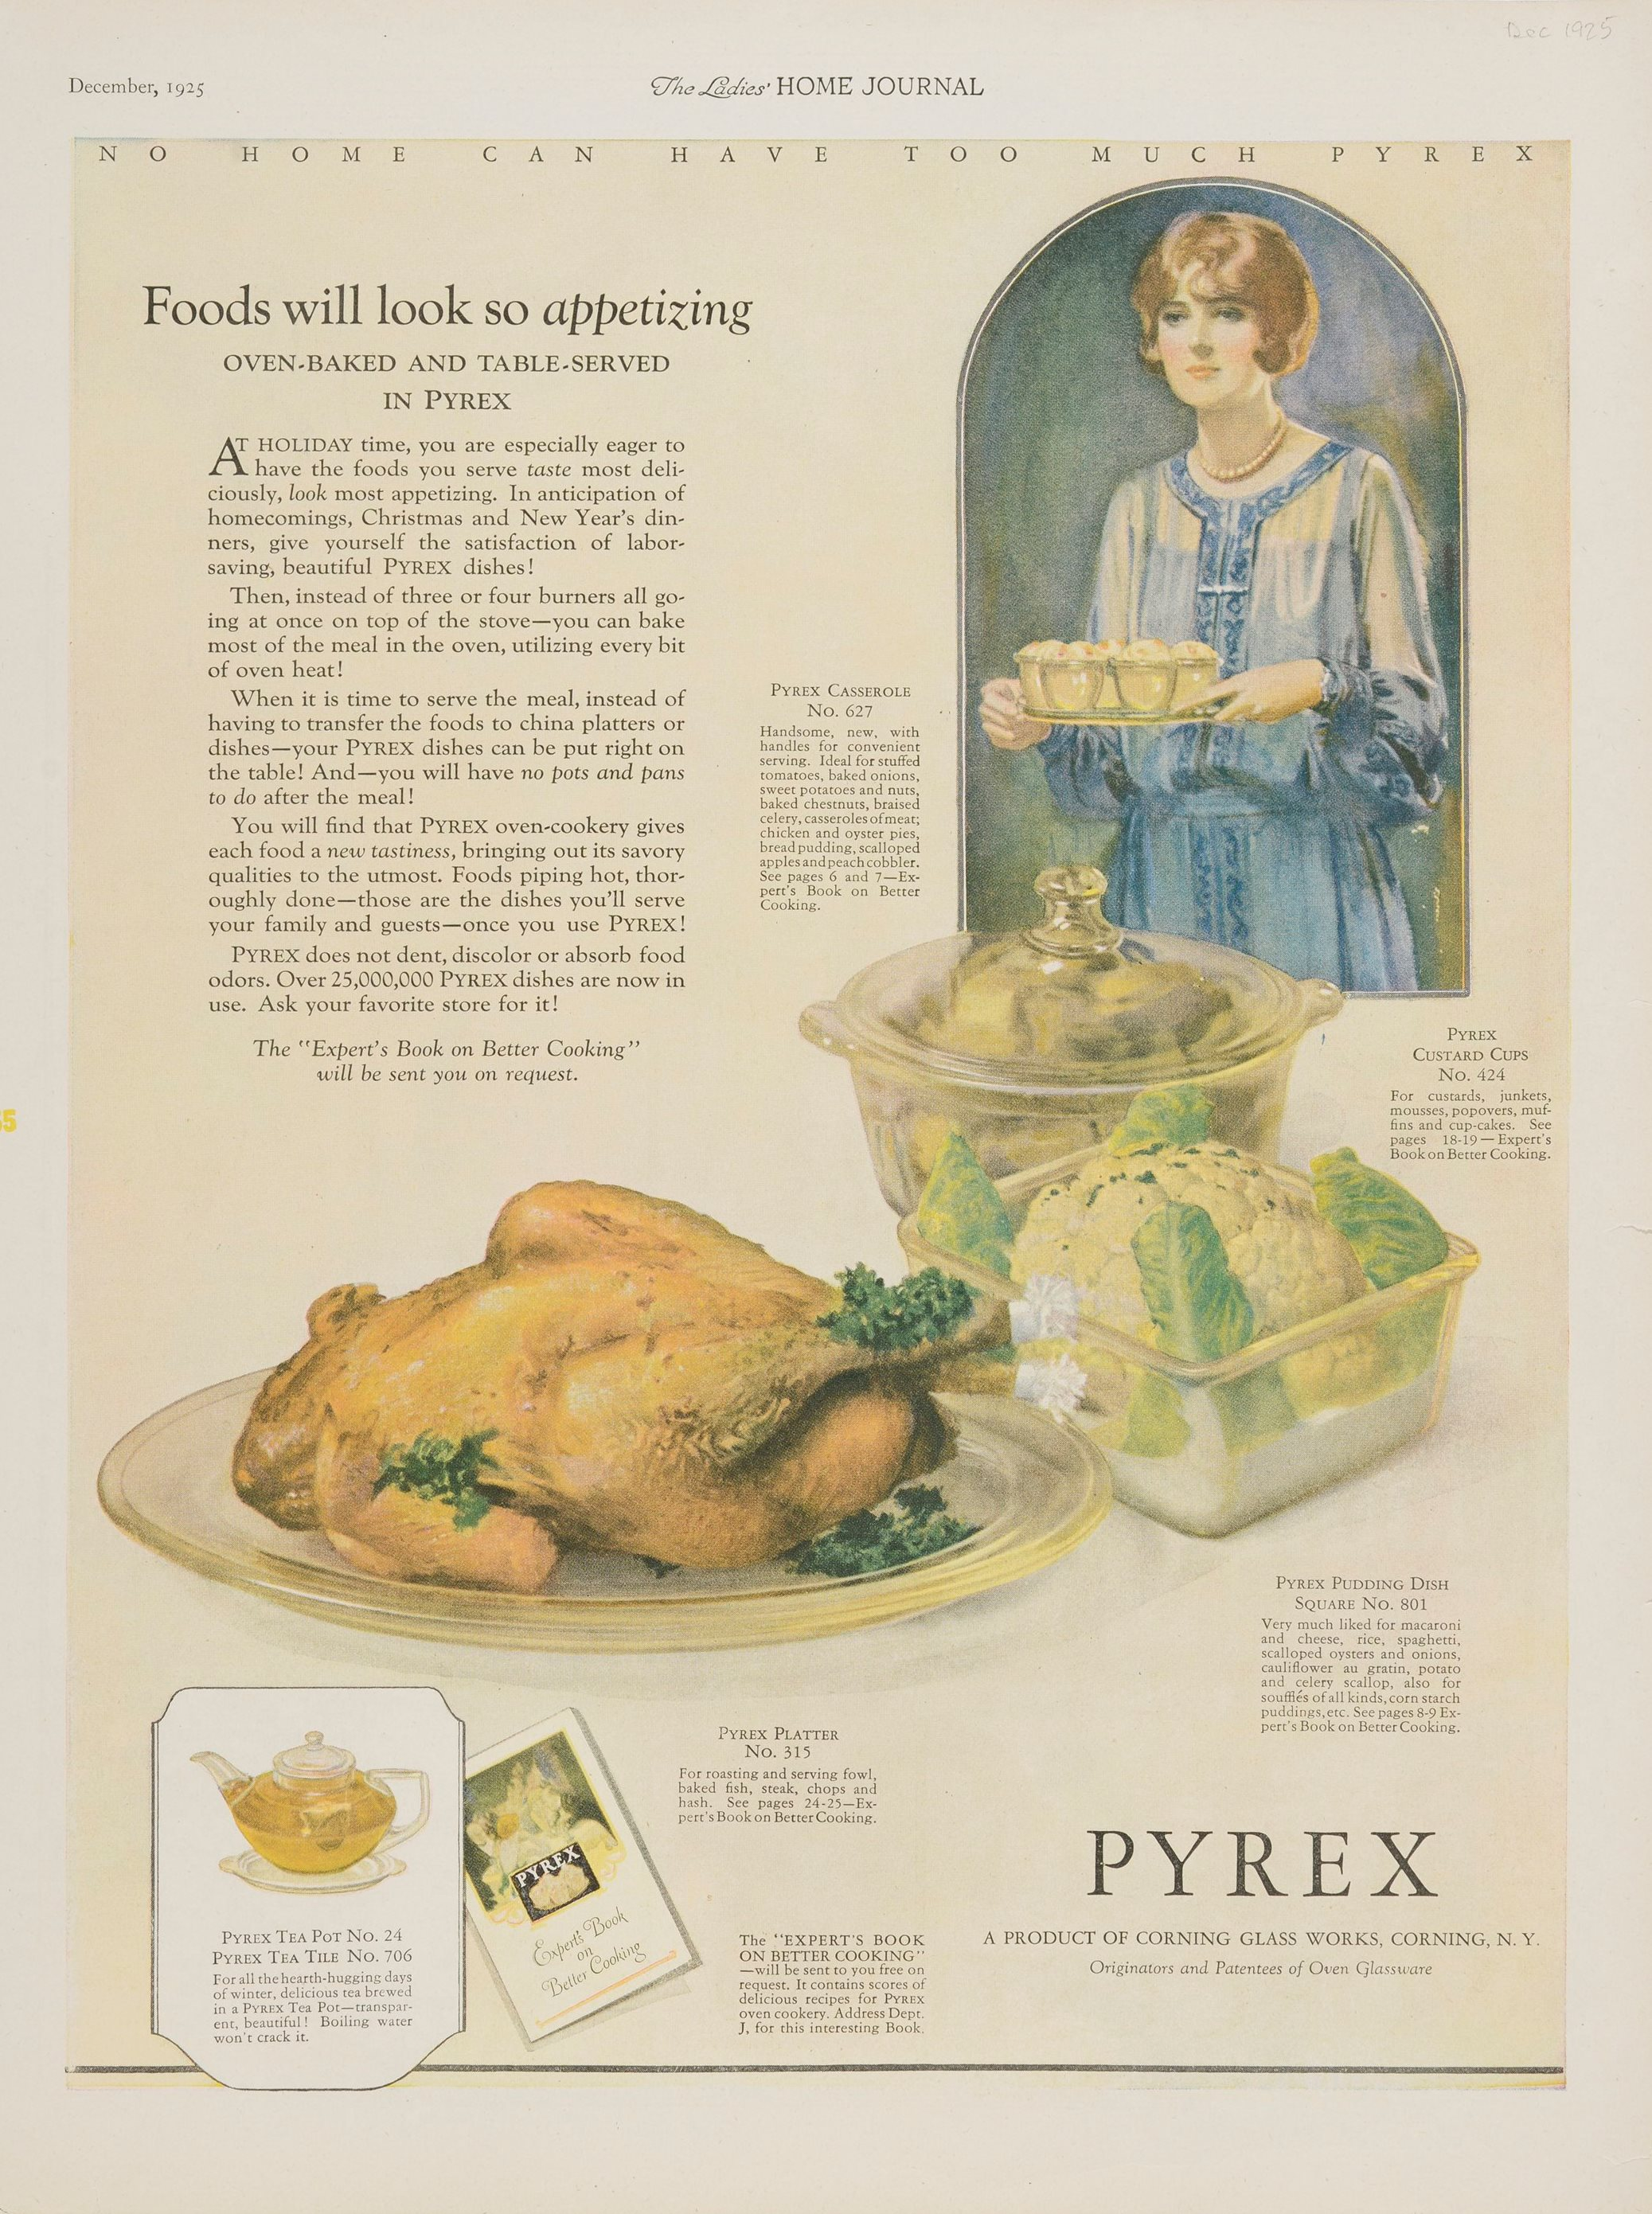 """""""Foods will look so appetizing: oven-baked and table-served in Pyrex."""" Advertisement from Corning Glass Works, published in Ladies' Home Journal, December 1925. CMGL 140430."""